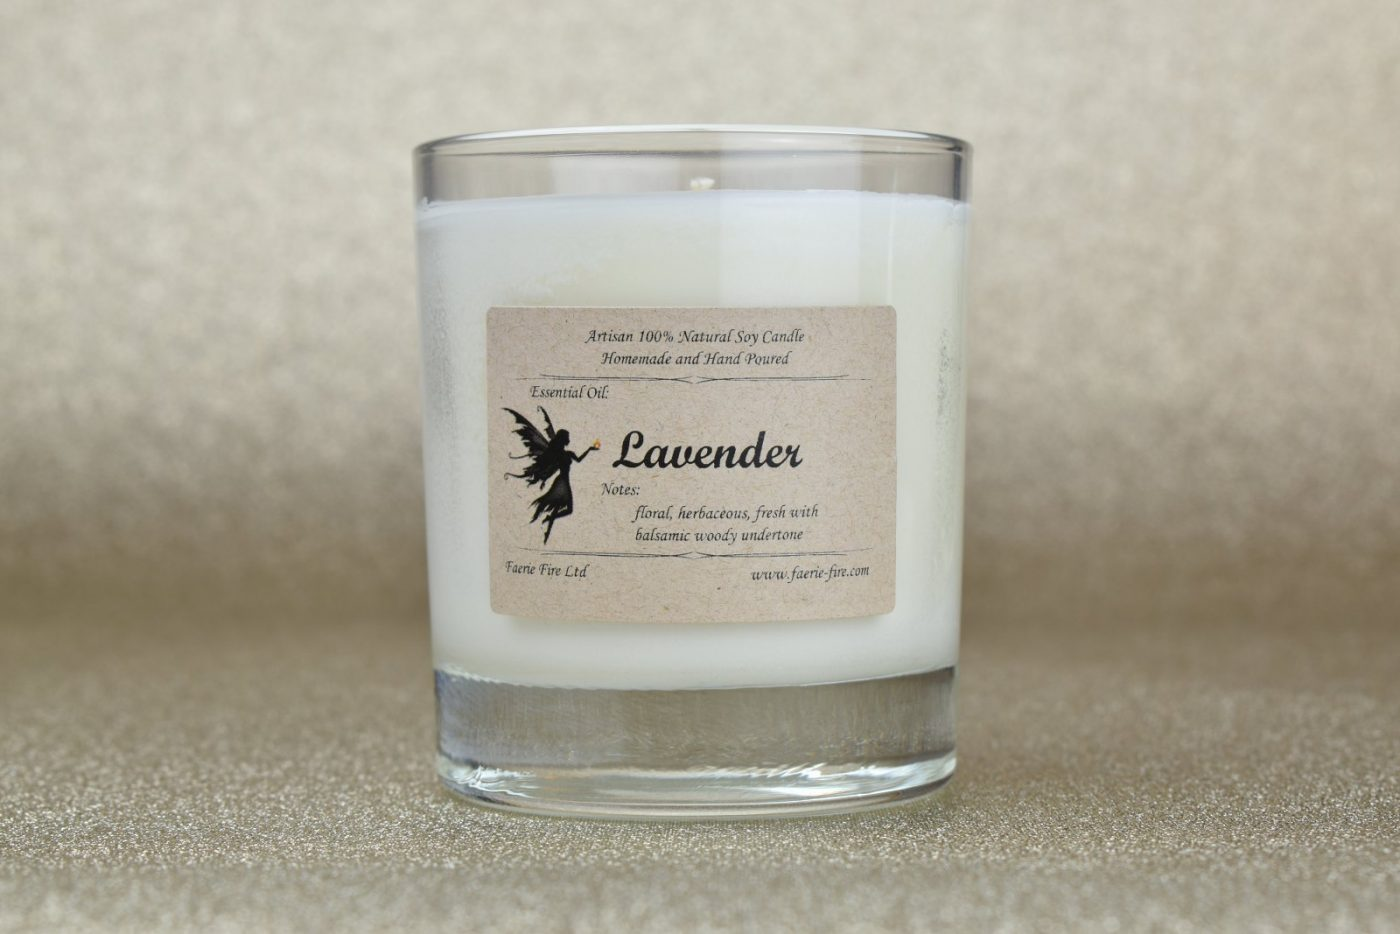 Lavender essential oil soy wax white candle in a clear glass jar against a gold plain background